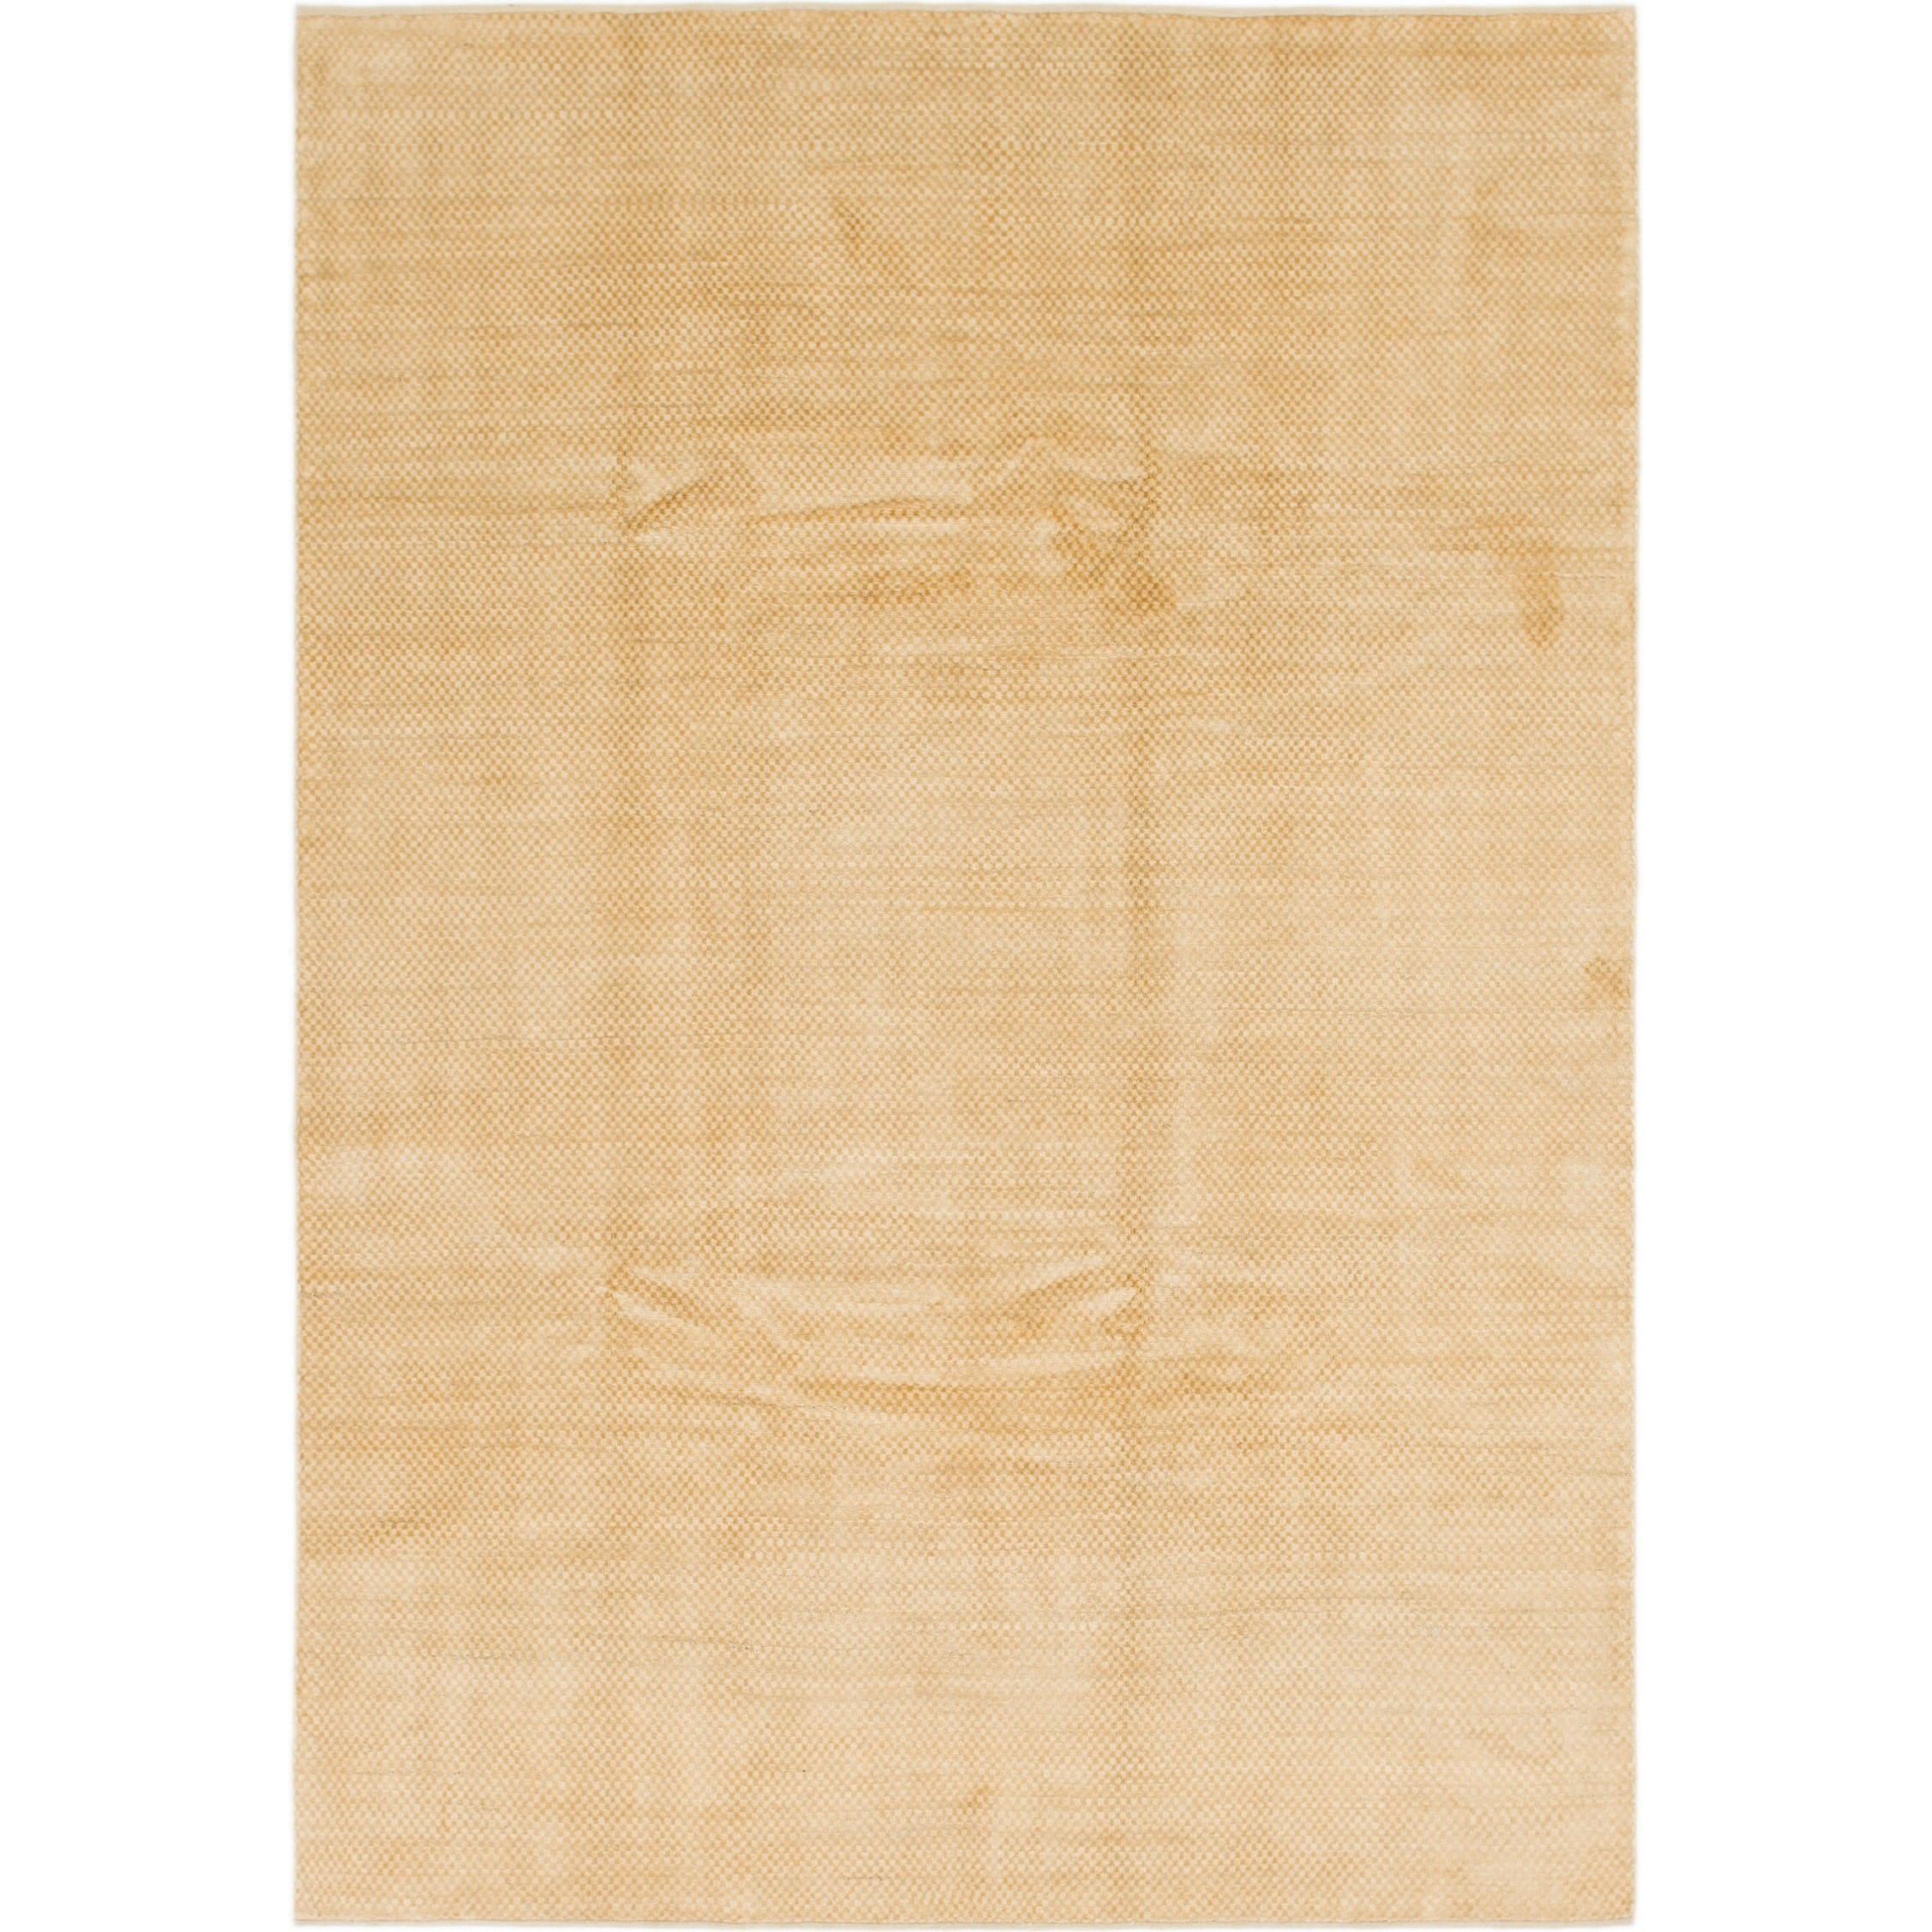 Hand Knotted Kashkuli Gabbeh Wool Area Rug - 6 8 x 9 8 (Gold - 6 8 x 9 8)